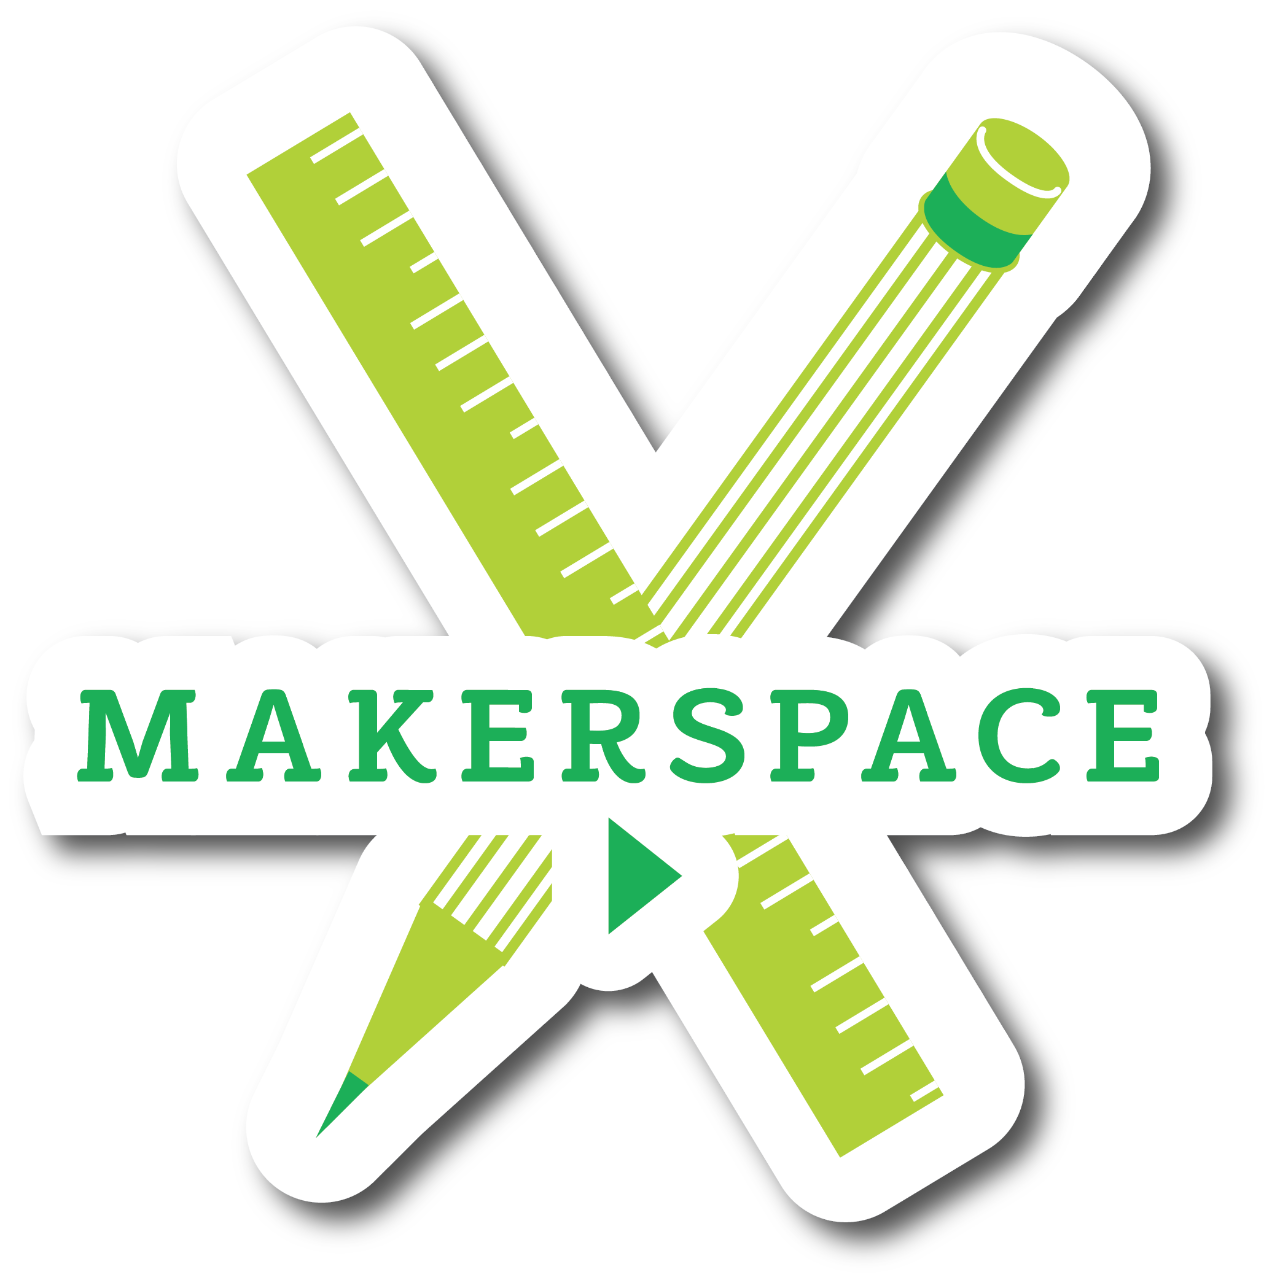 MakerSpace-09